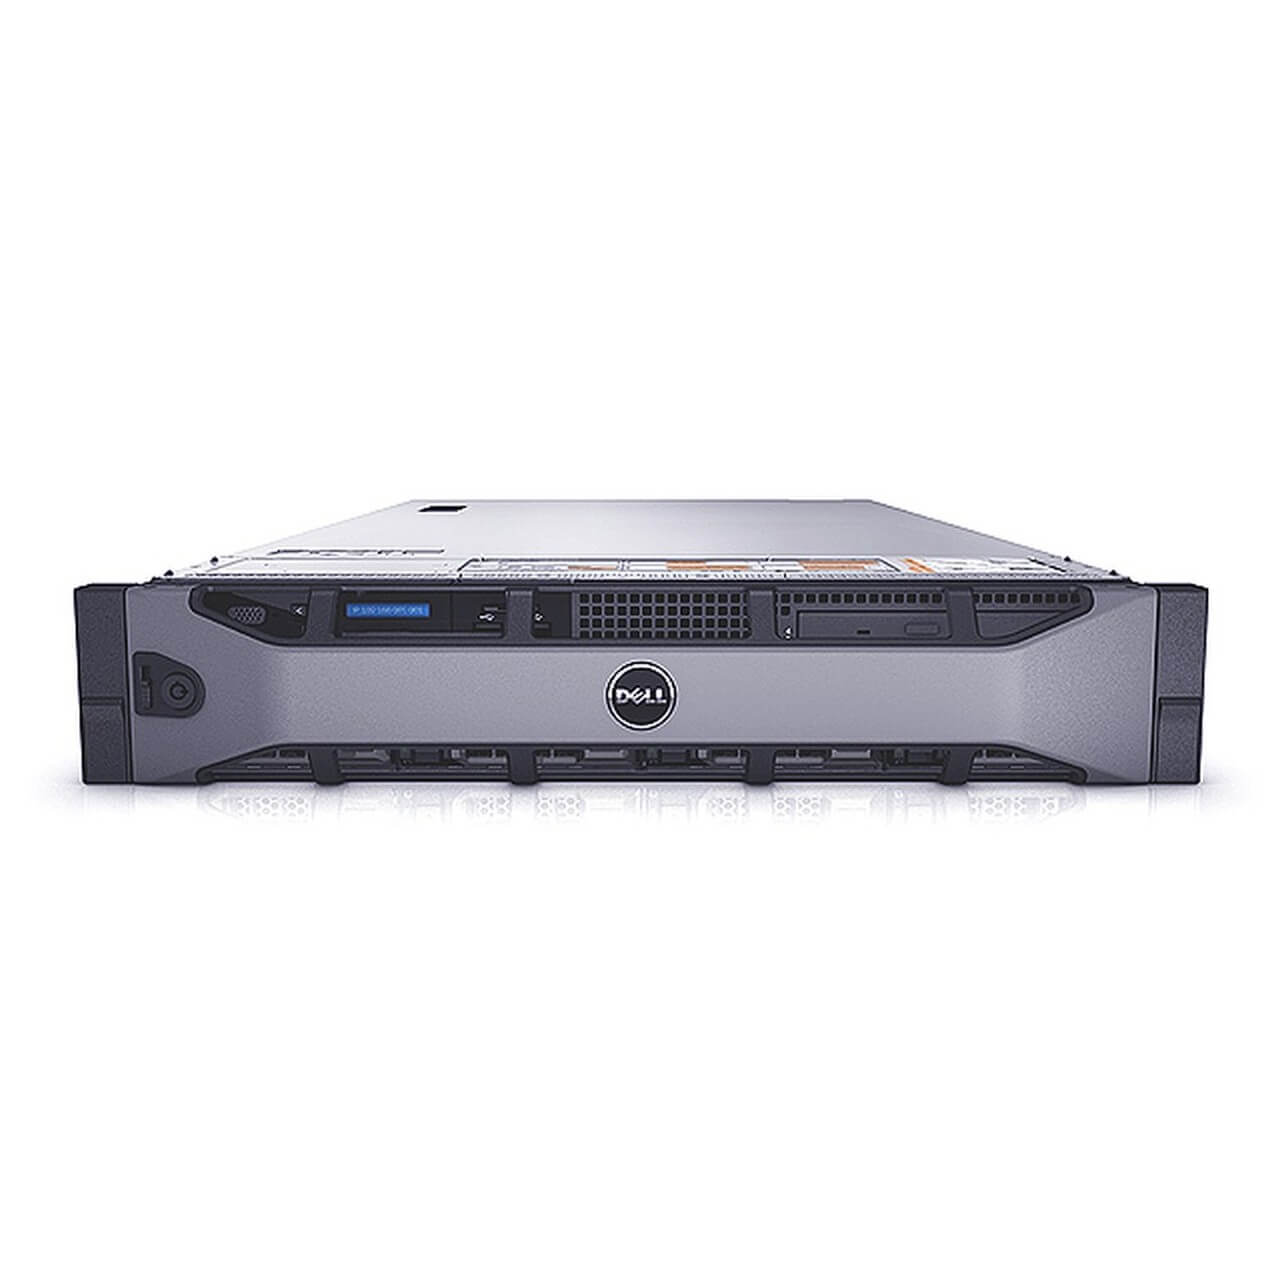 Buy & save on refurbished Dell servers from your trusted partners at Flagship Technologies.